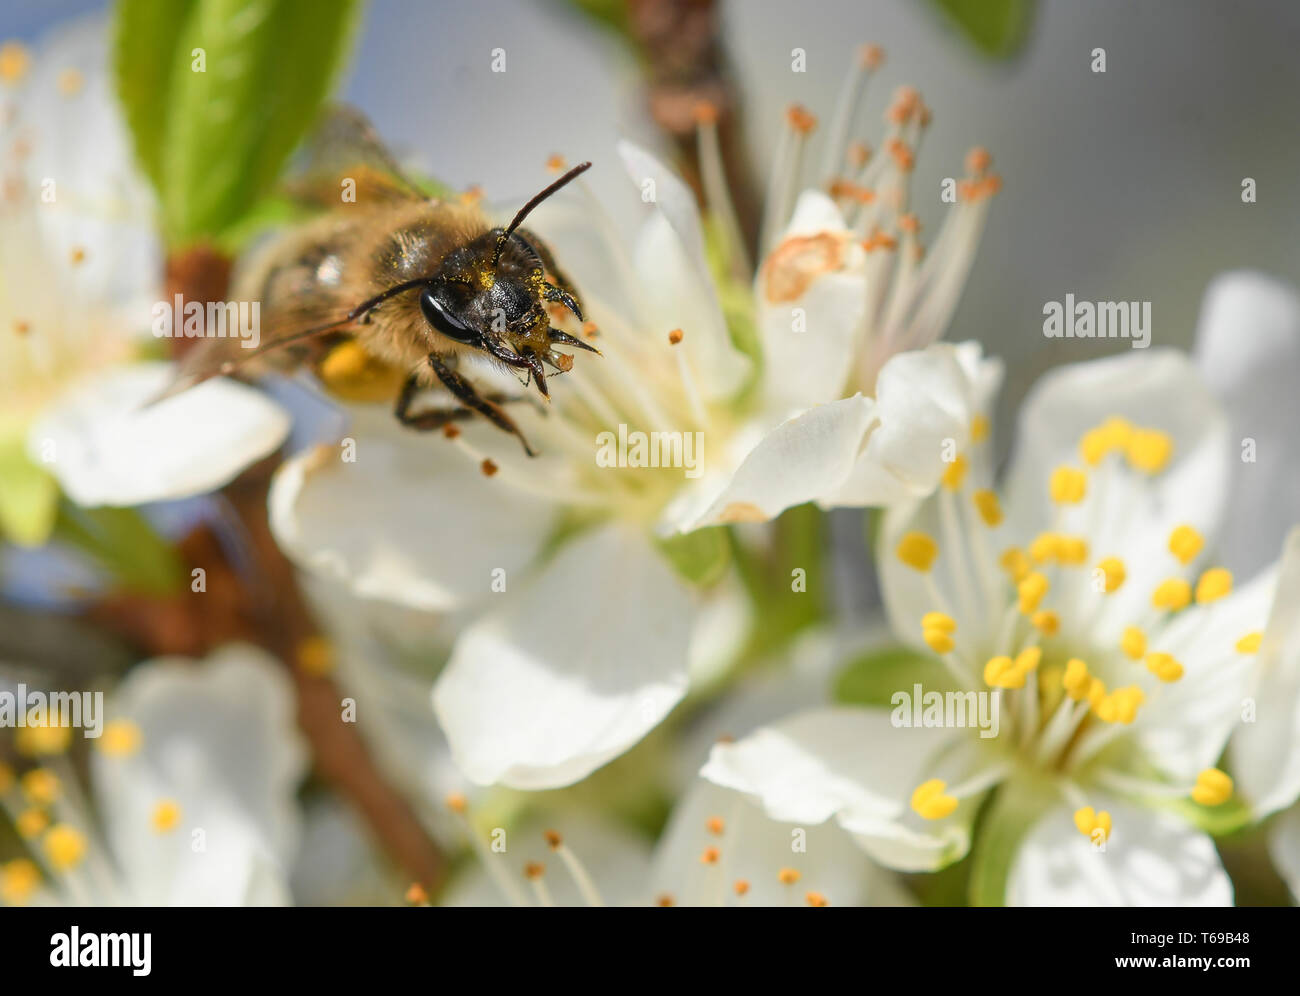 close-up of the mouthpiece of a lonely bee on a plum blossom - Stock Image